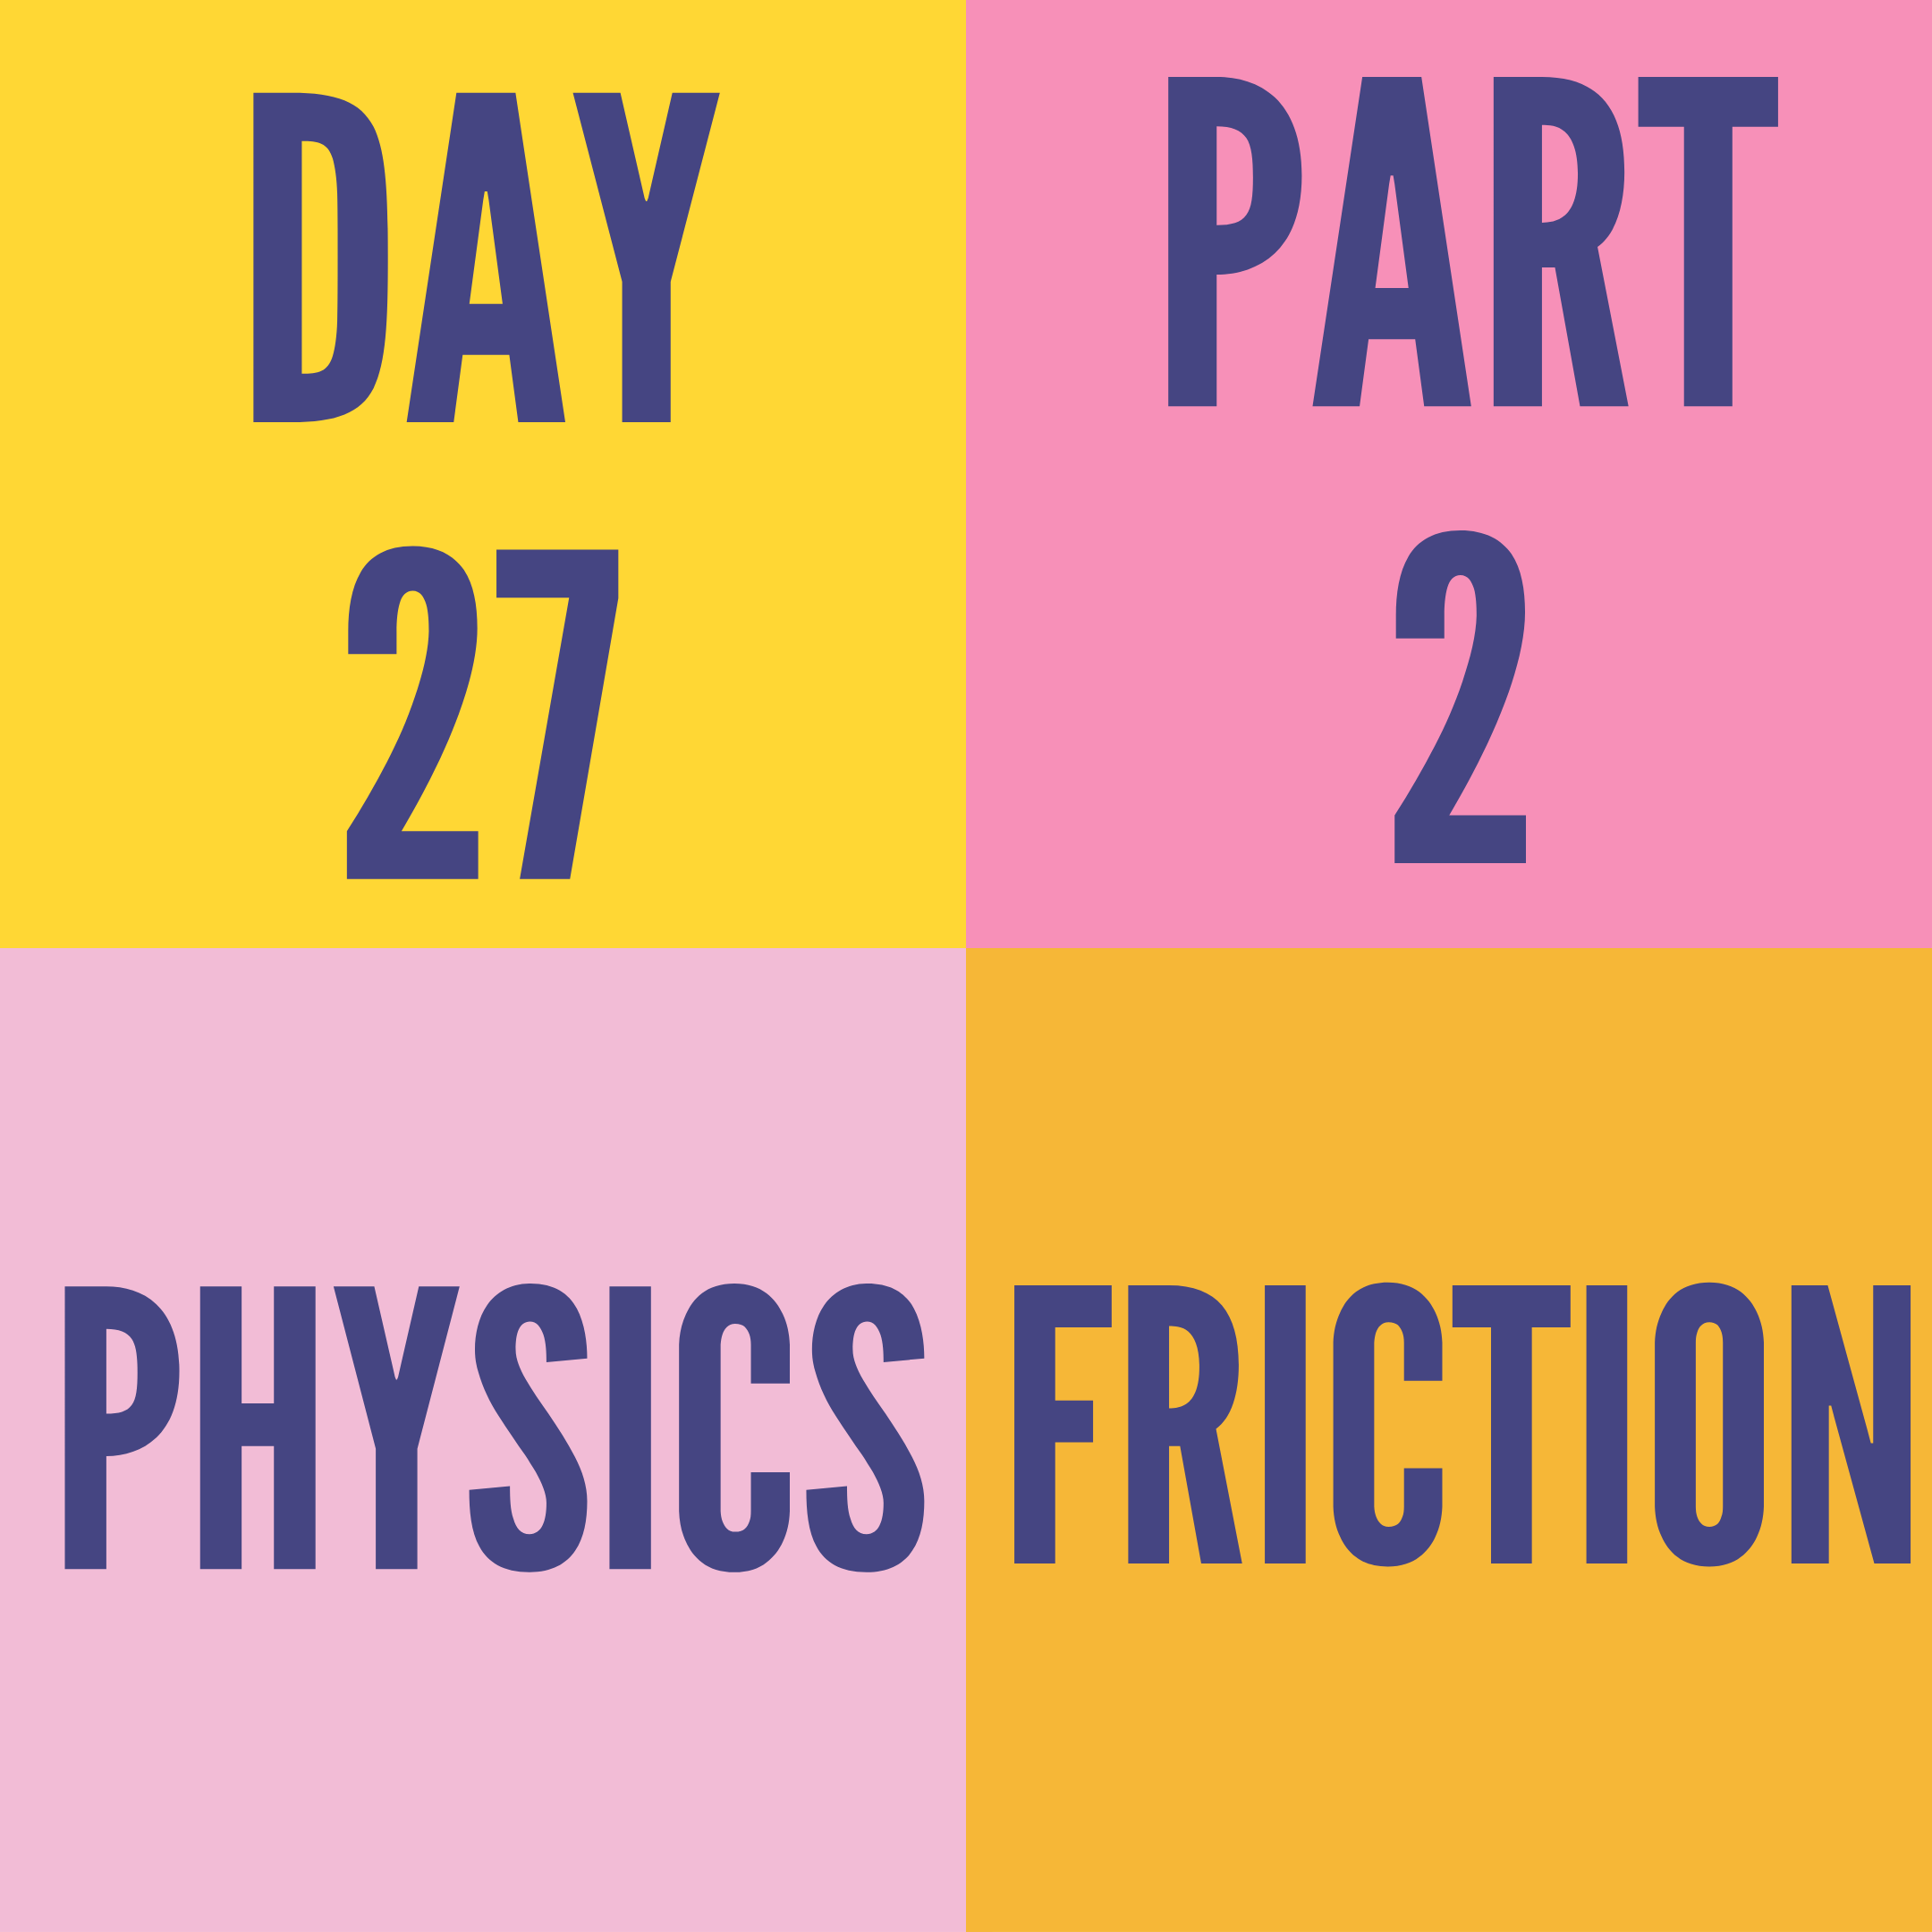 DAY-27 PART-2 FRICTION